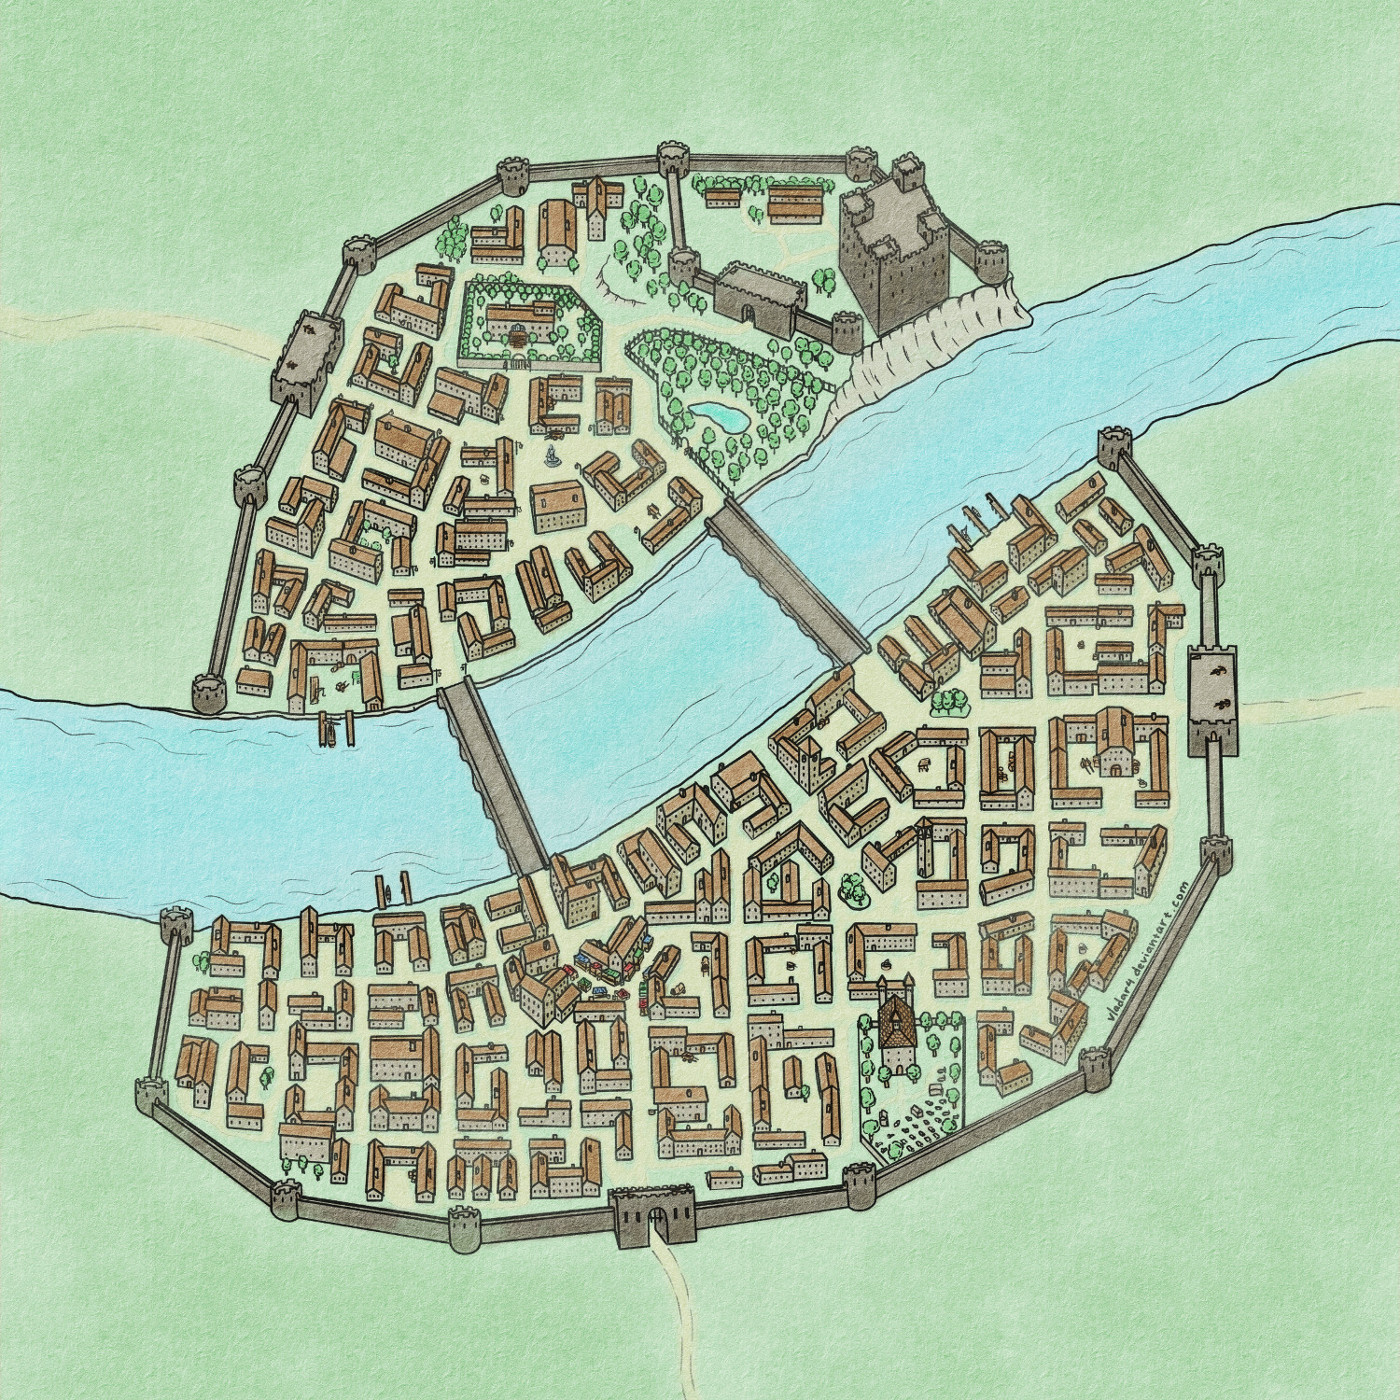 Small Medieval Town Map by Vladar4 on DeviantArt